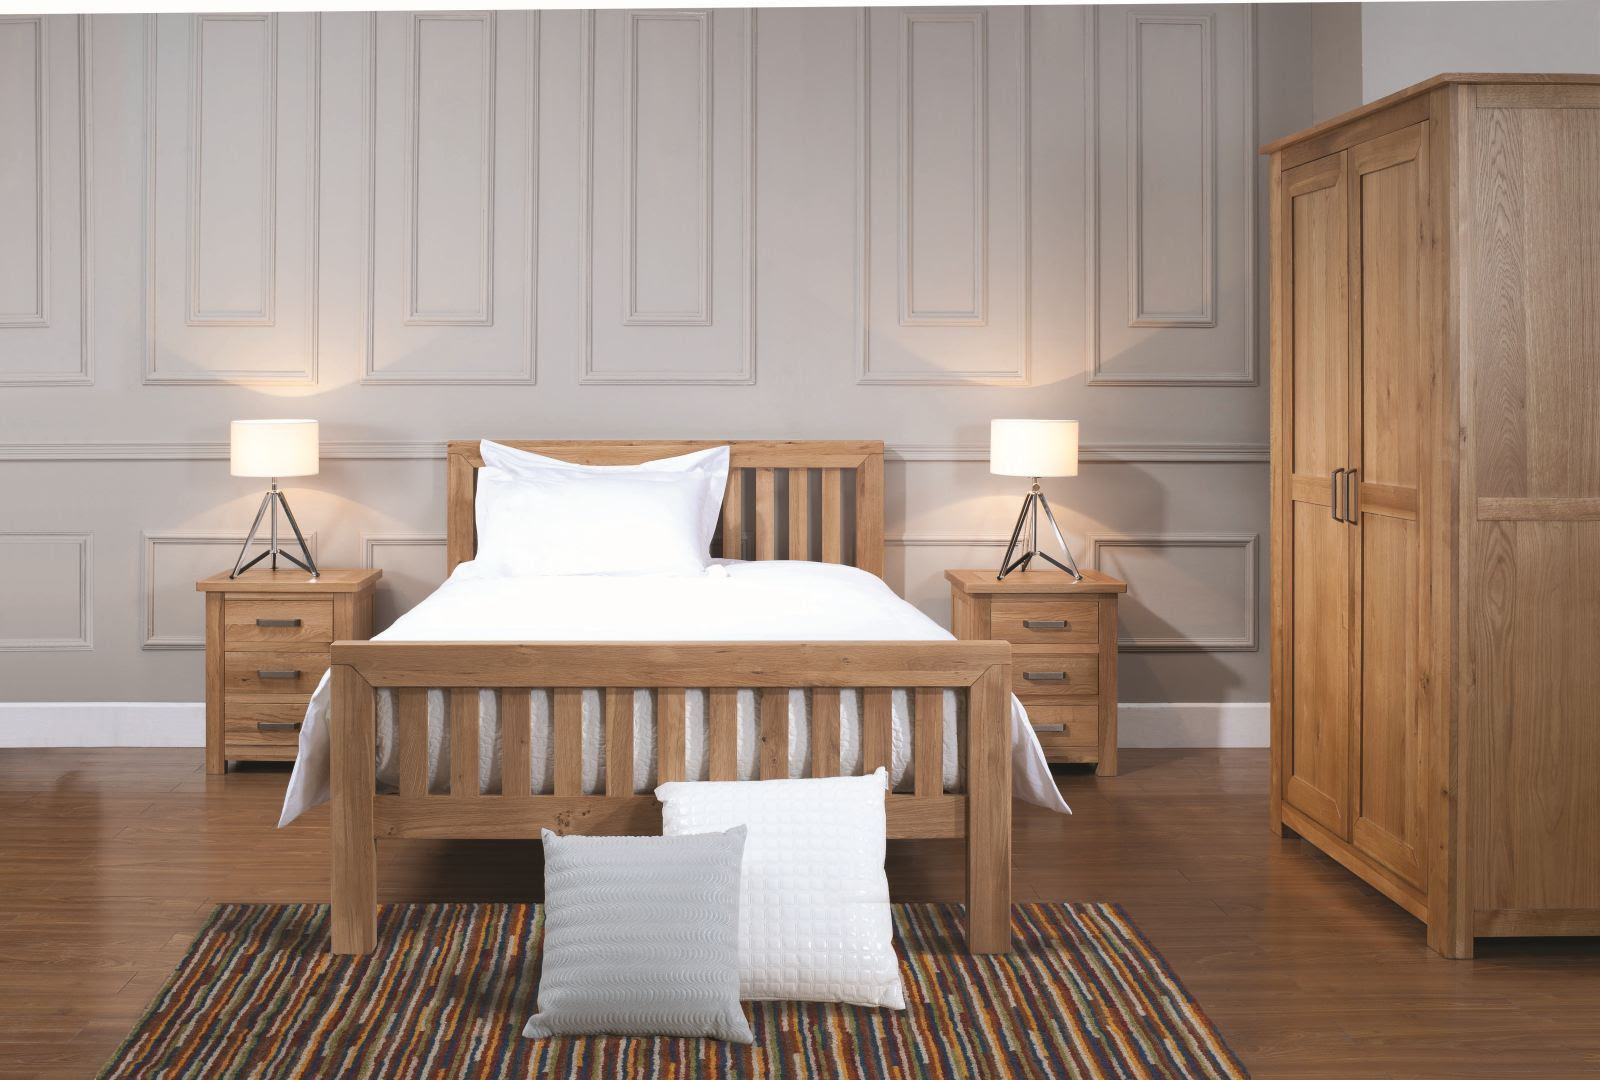 35 Rustic Bedroom Design For Your Home - The WoW Style